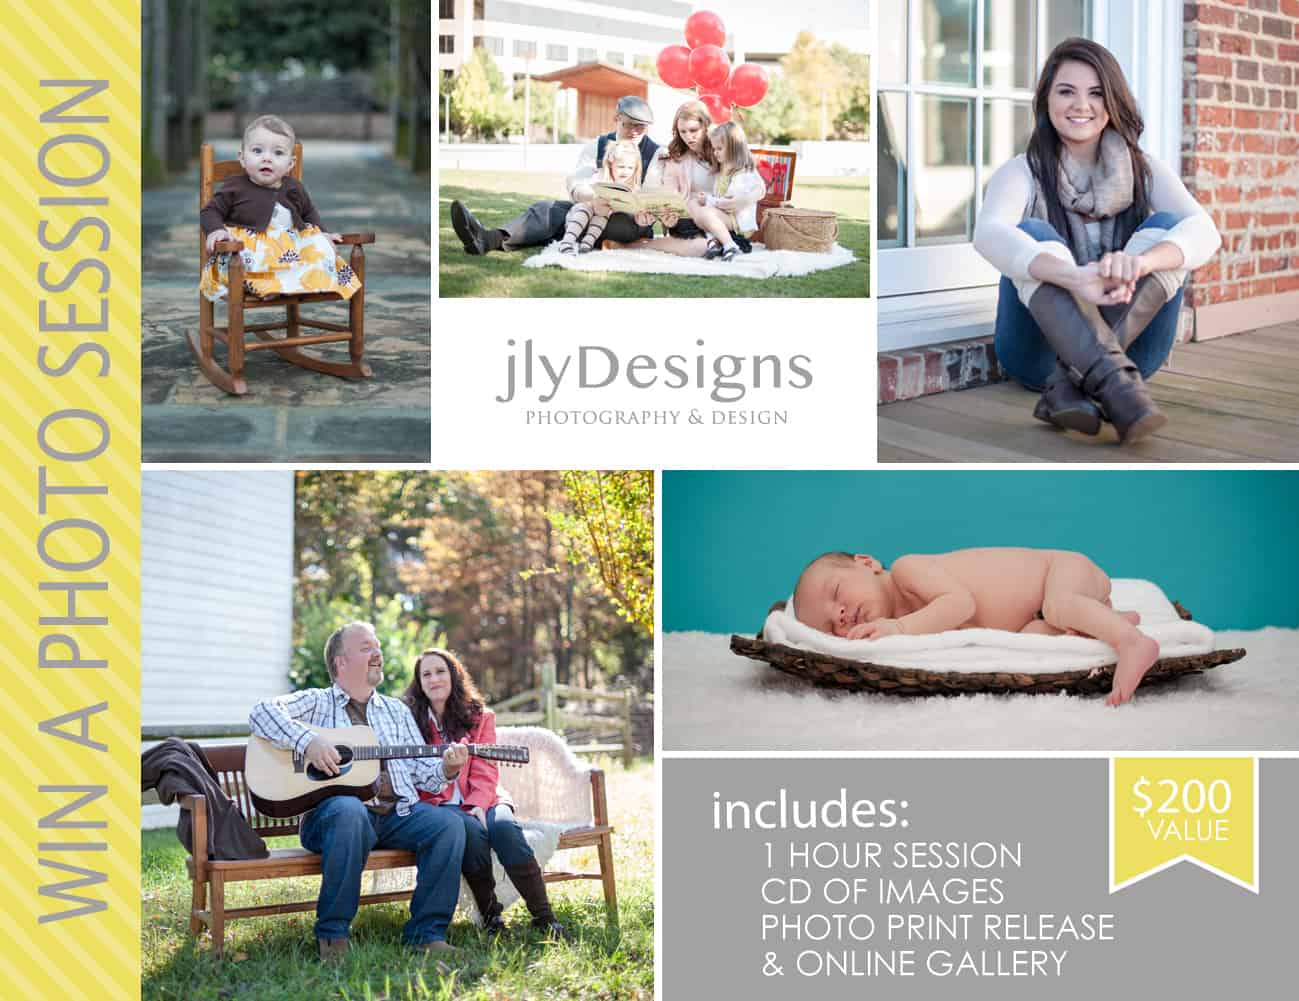 Free Photo Session from jlyDesigns